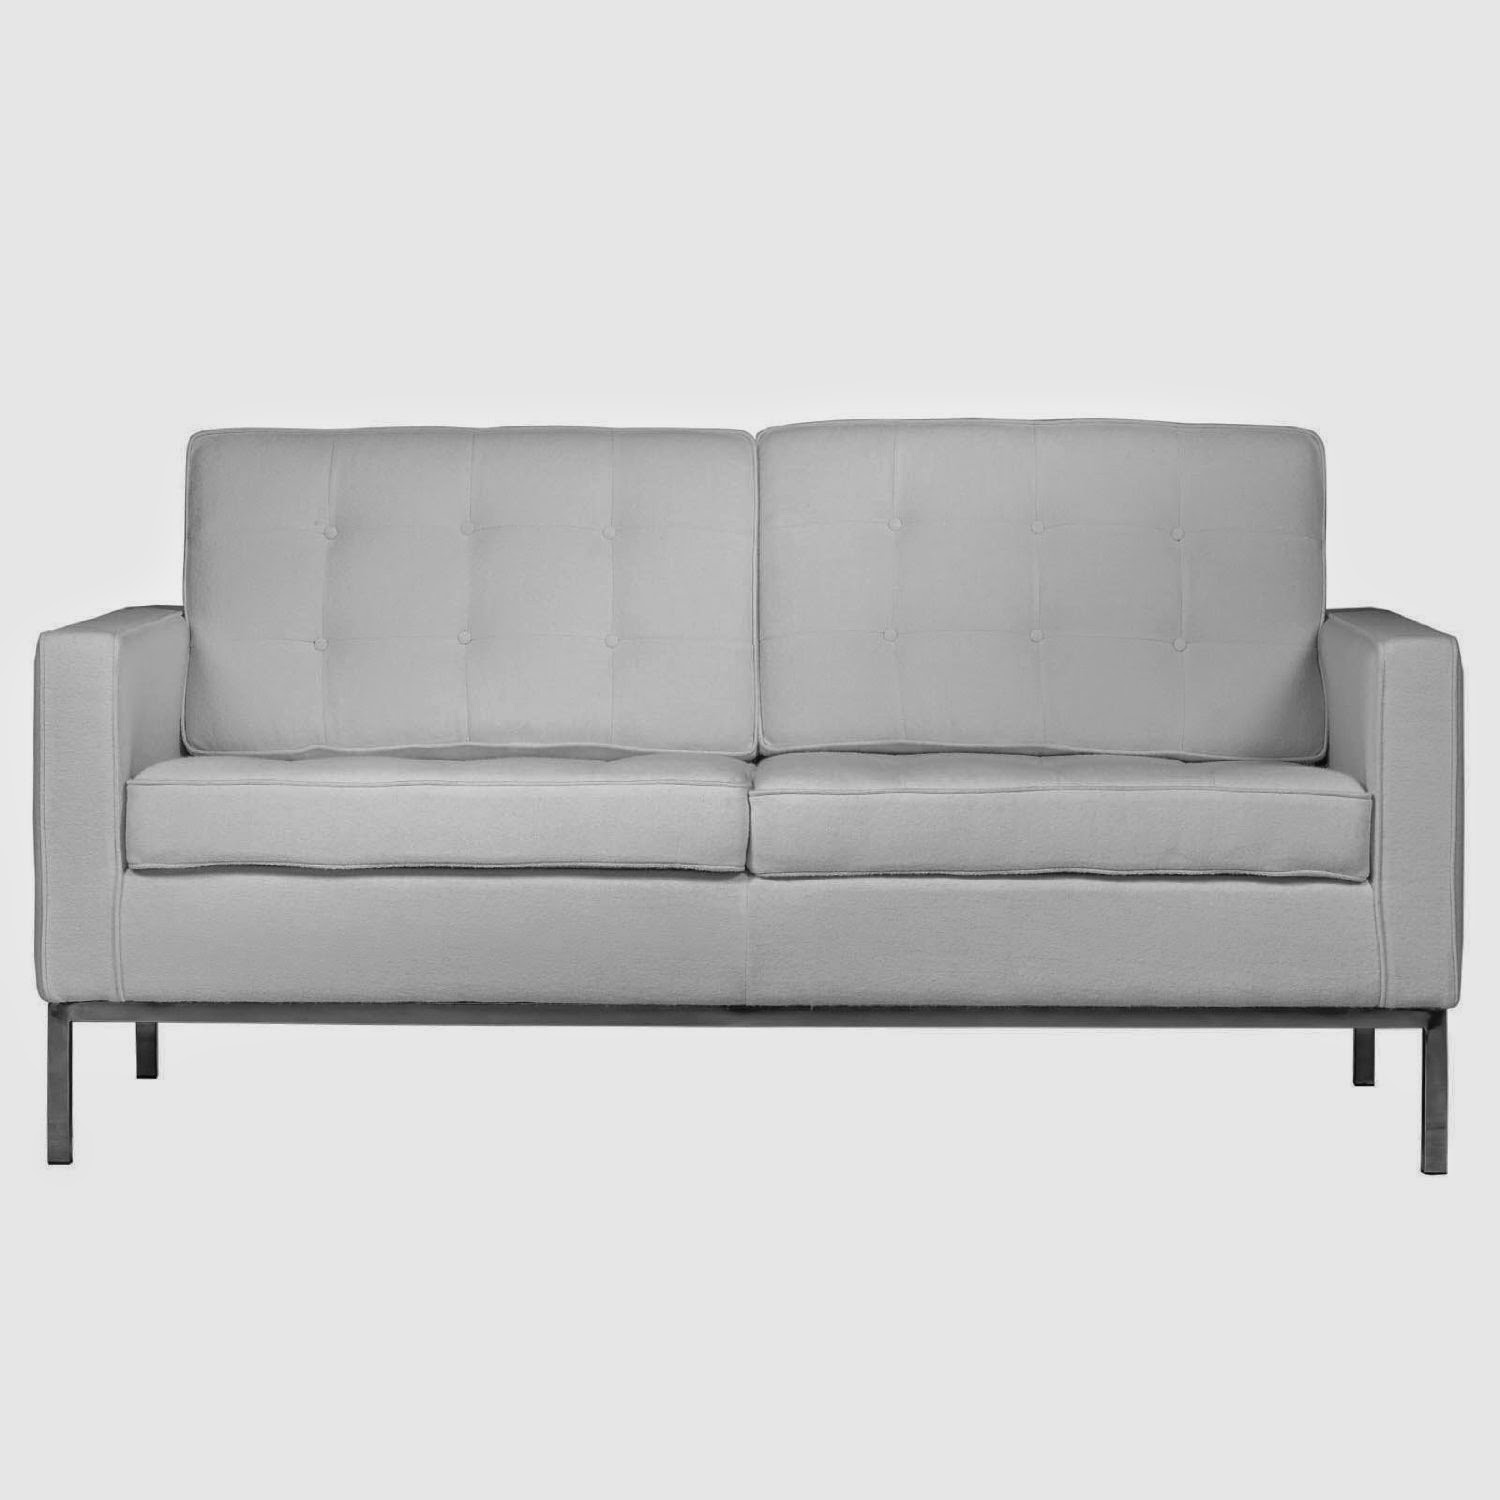 sleeper sofas for small areas loveseat sofa sale couches you can sleep on best and mattress